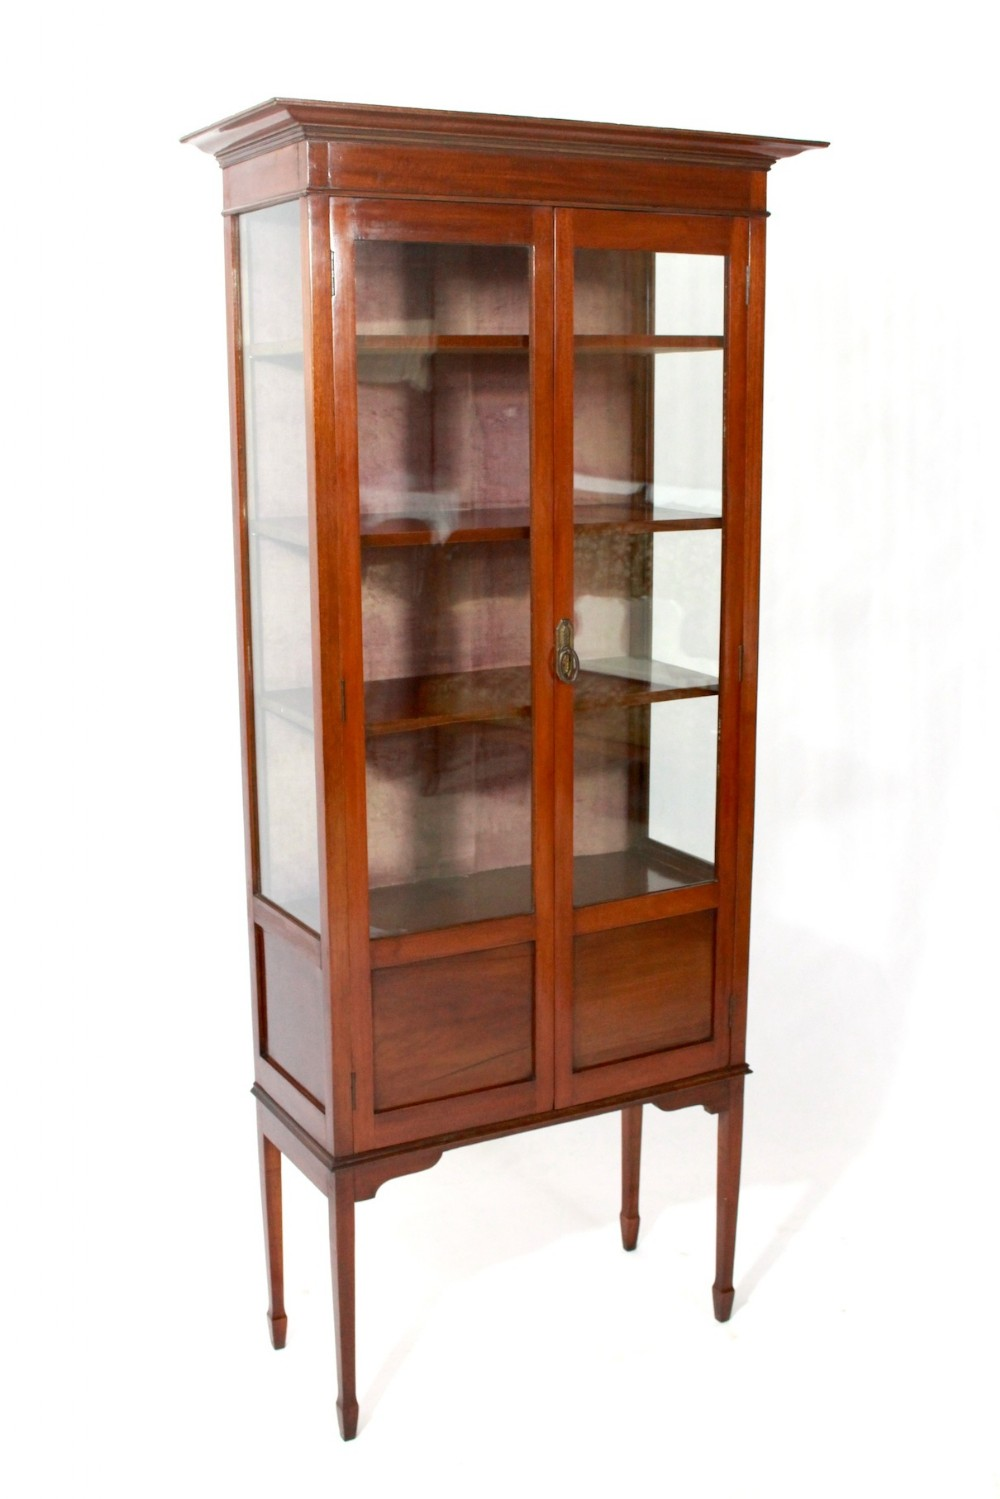 Antique edwardian mahogany display cabinet 307499 for Antique display cabinet